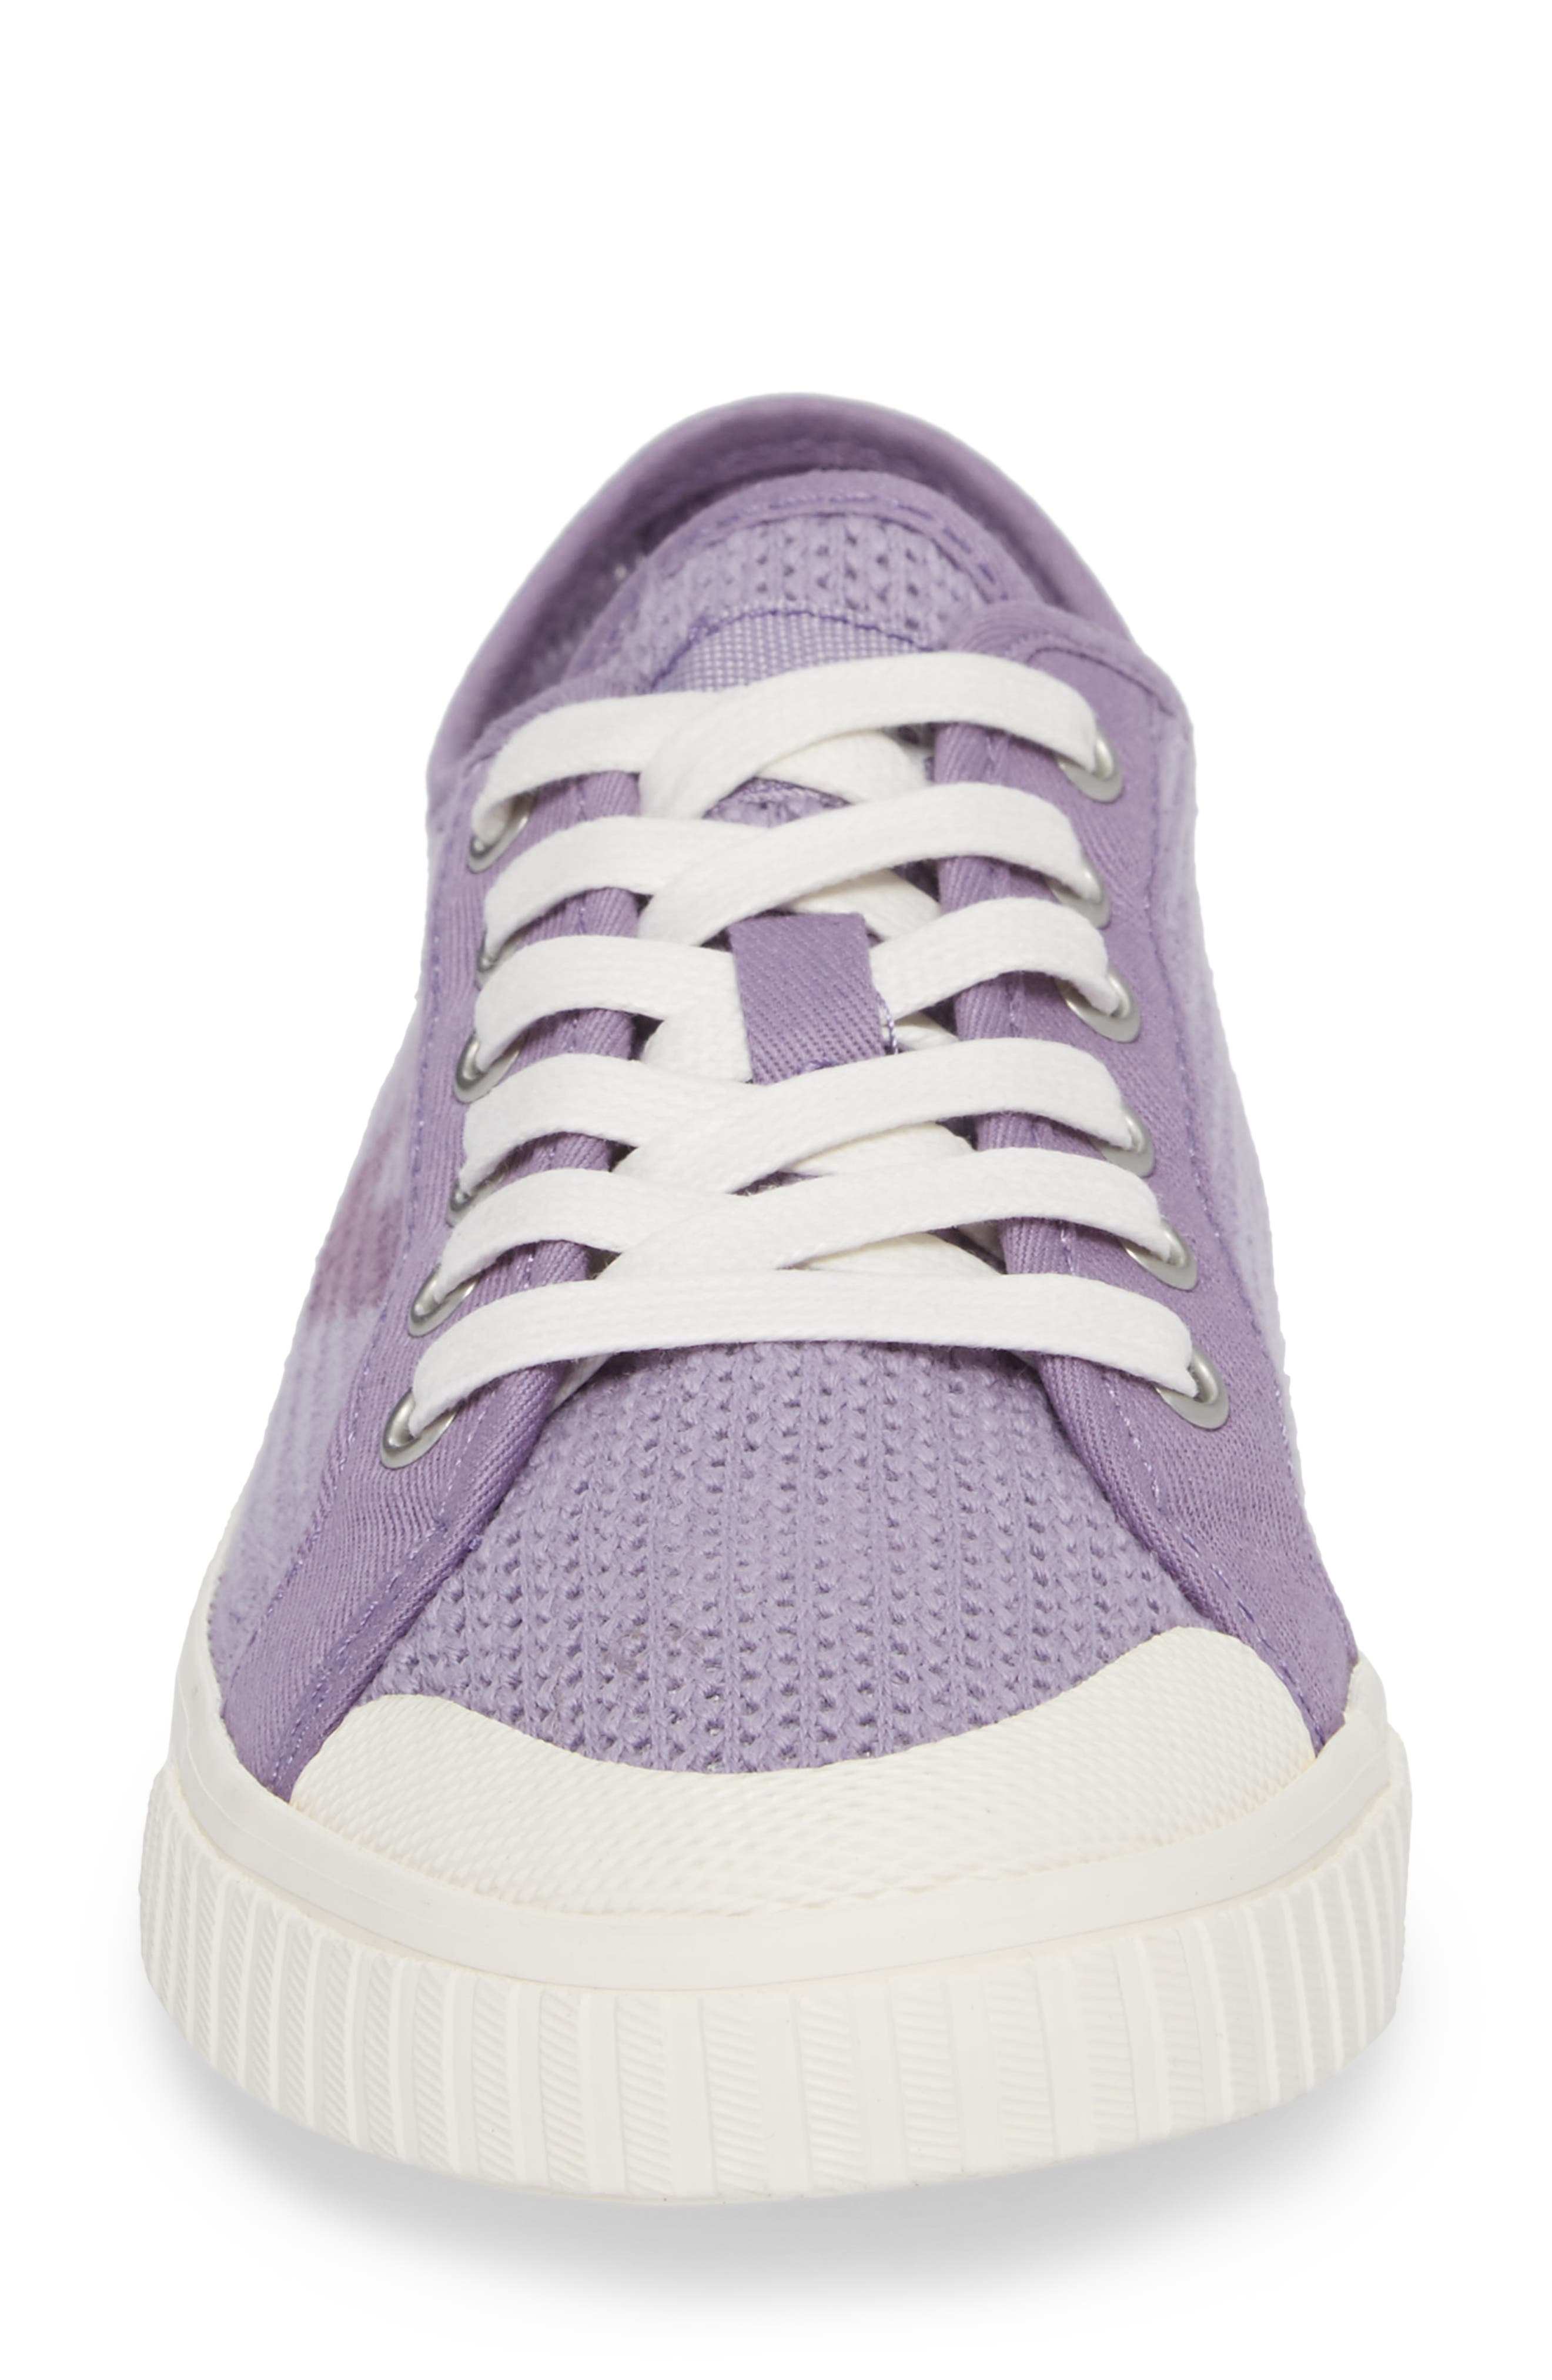 'Tournament Net' Sneaker,                             Alternate thumbnail 4, color,                             Lavender Cotton Mesh